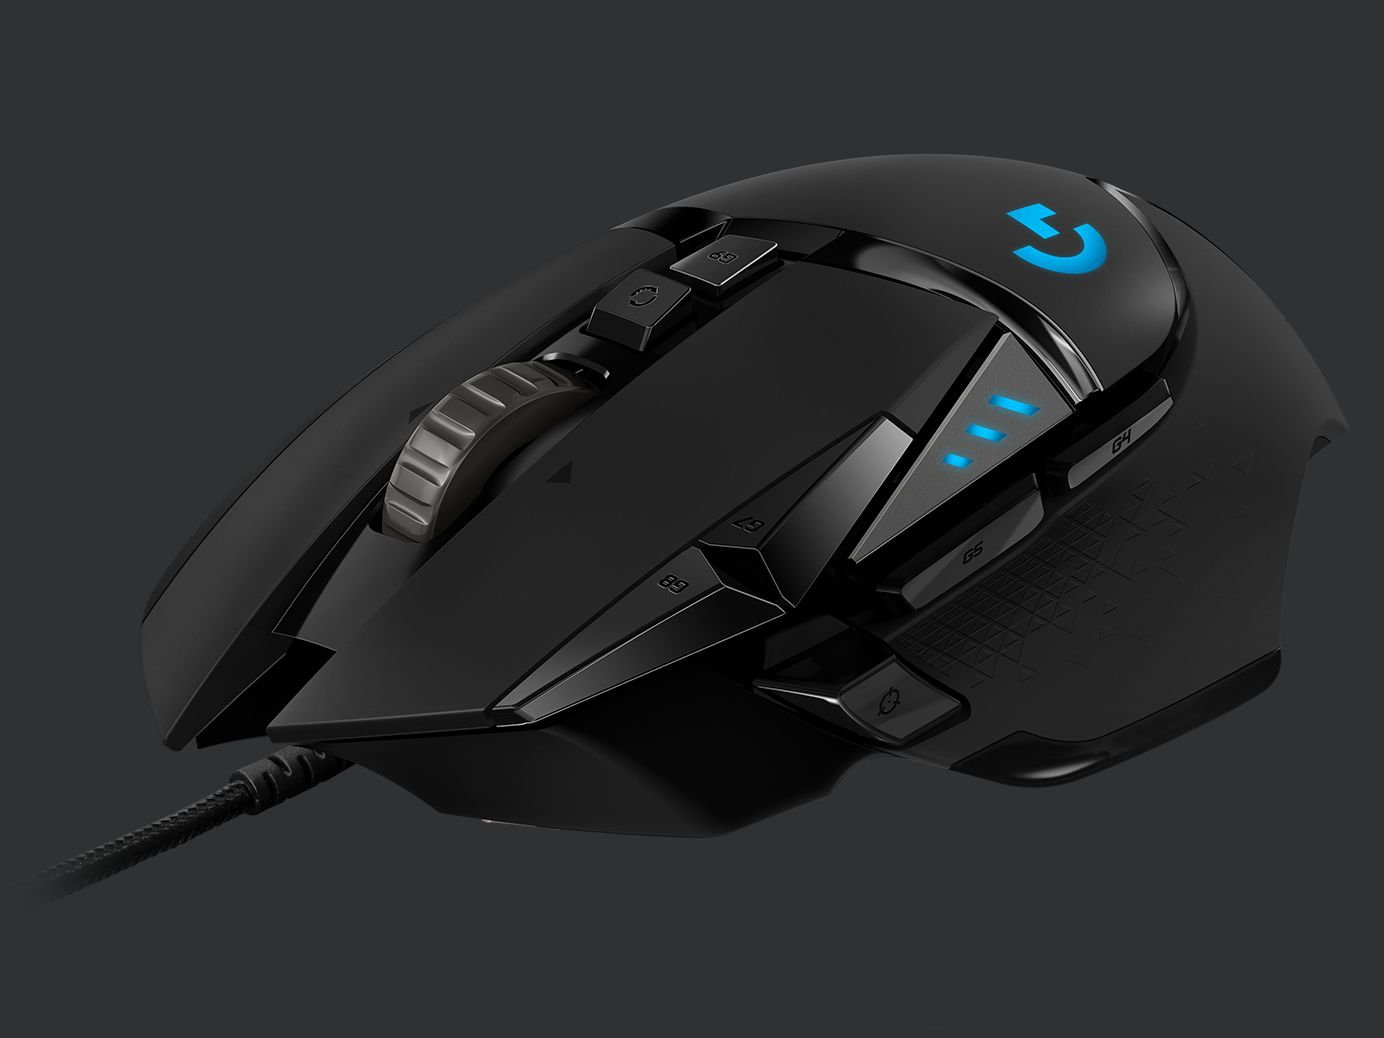 Image Showing Logitech G502 Gaming Mouse